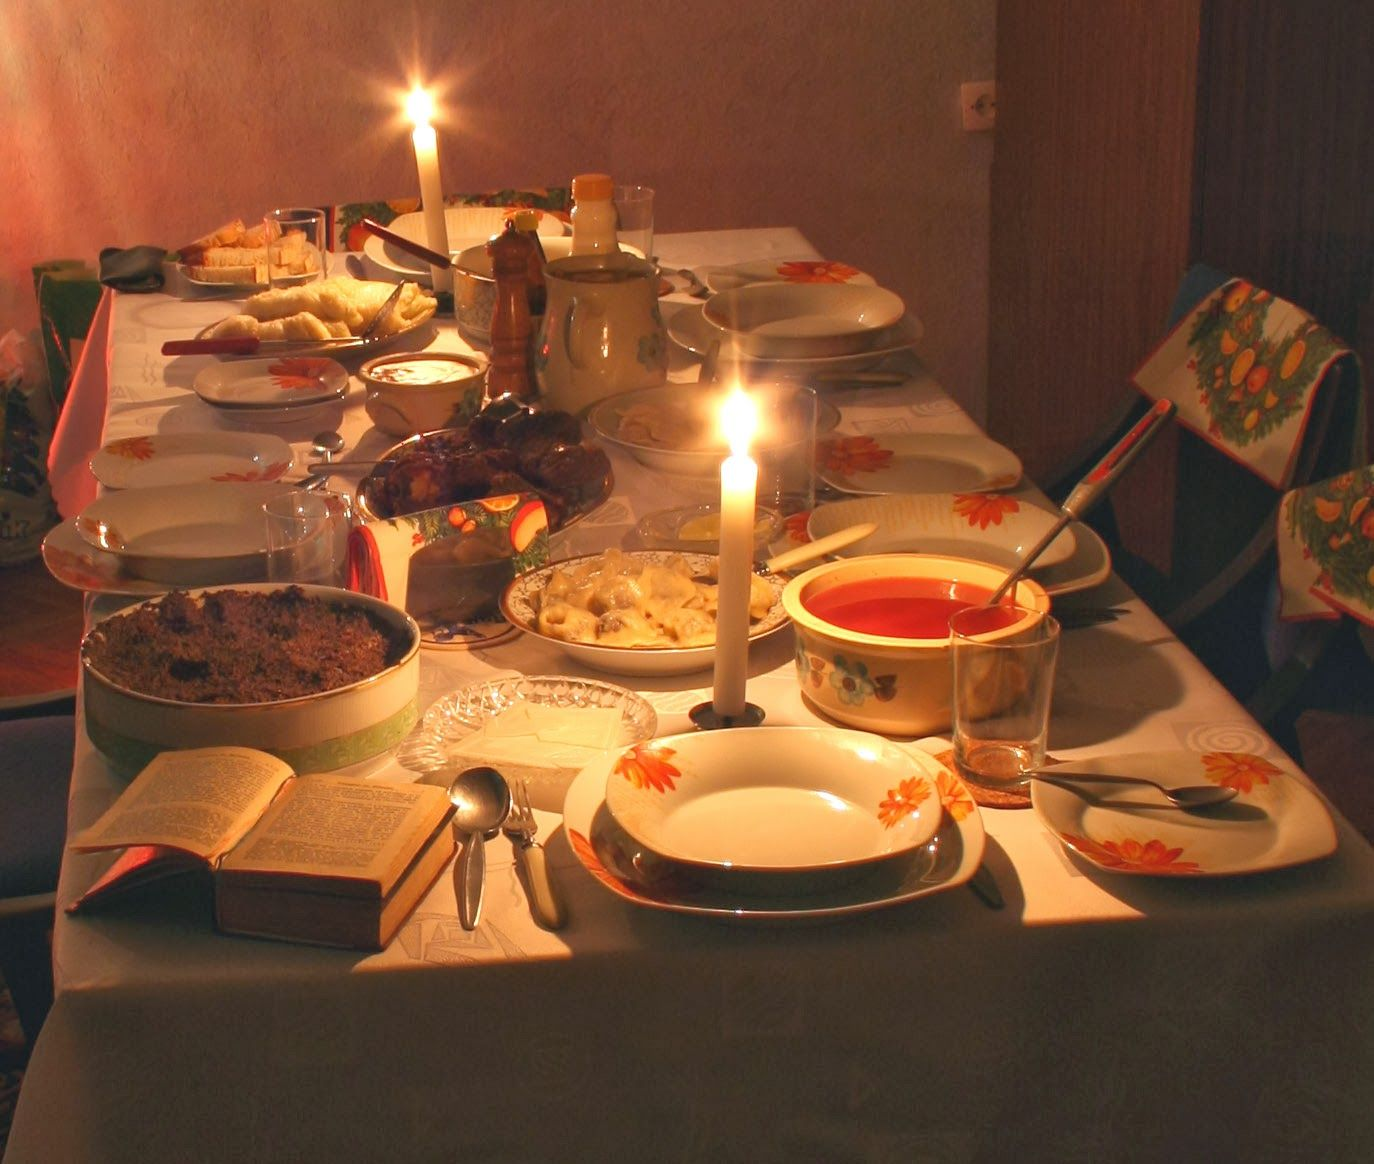 Weihnachten Orthodox.Living Orthodox Traditions Russian Christmas Eve Supper Holy